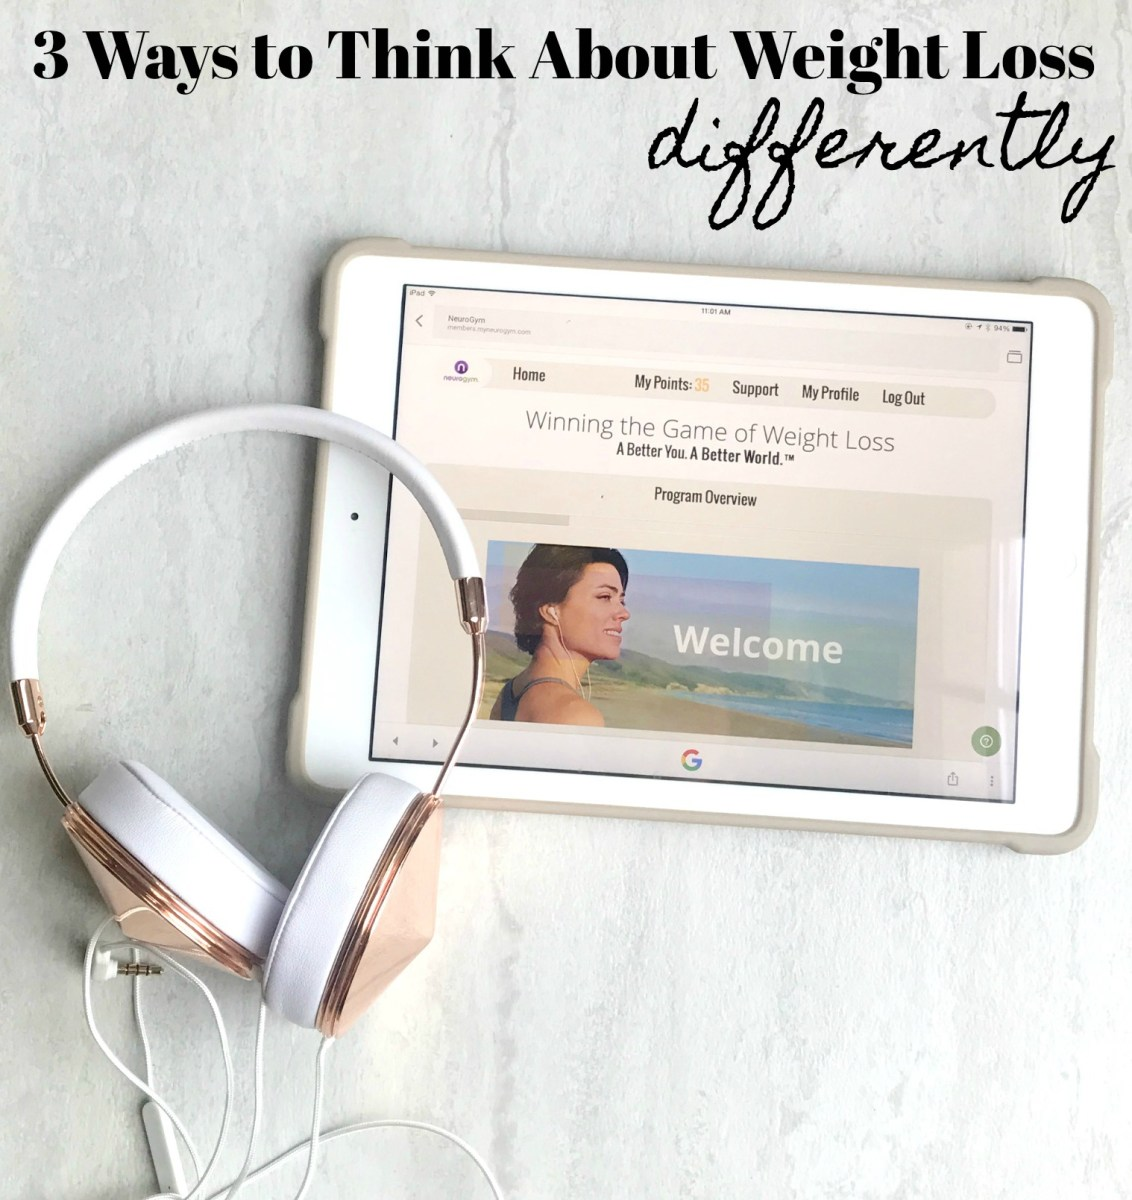 3 Ways to Think About Weight Loss Differently